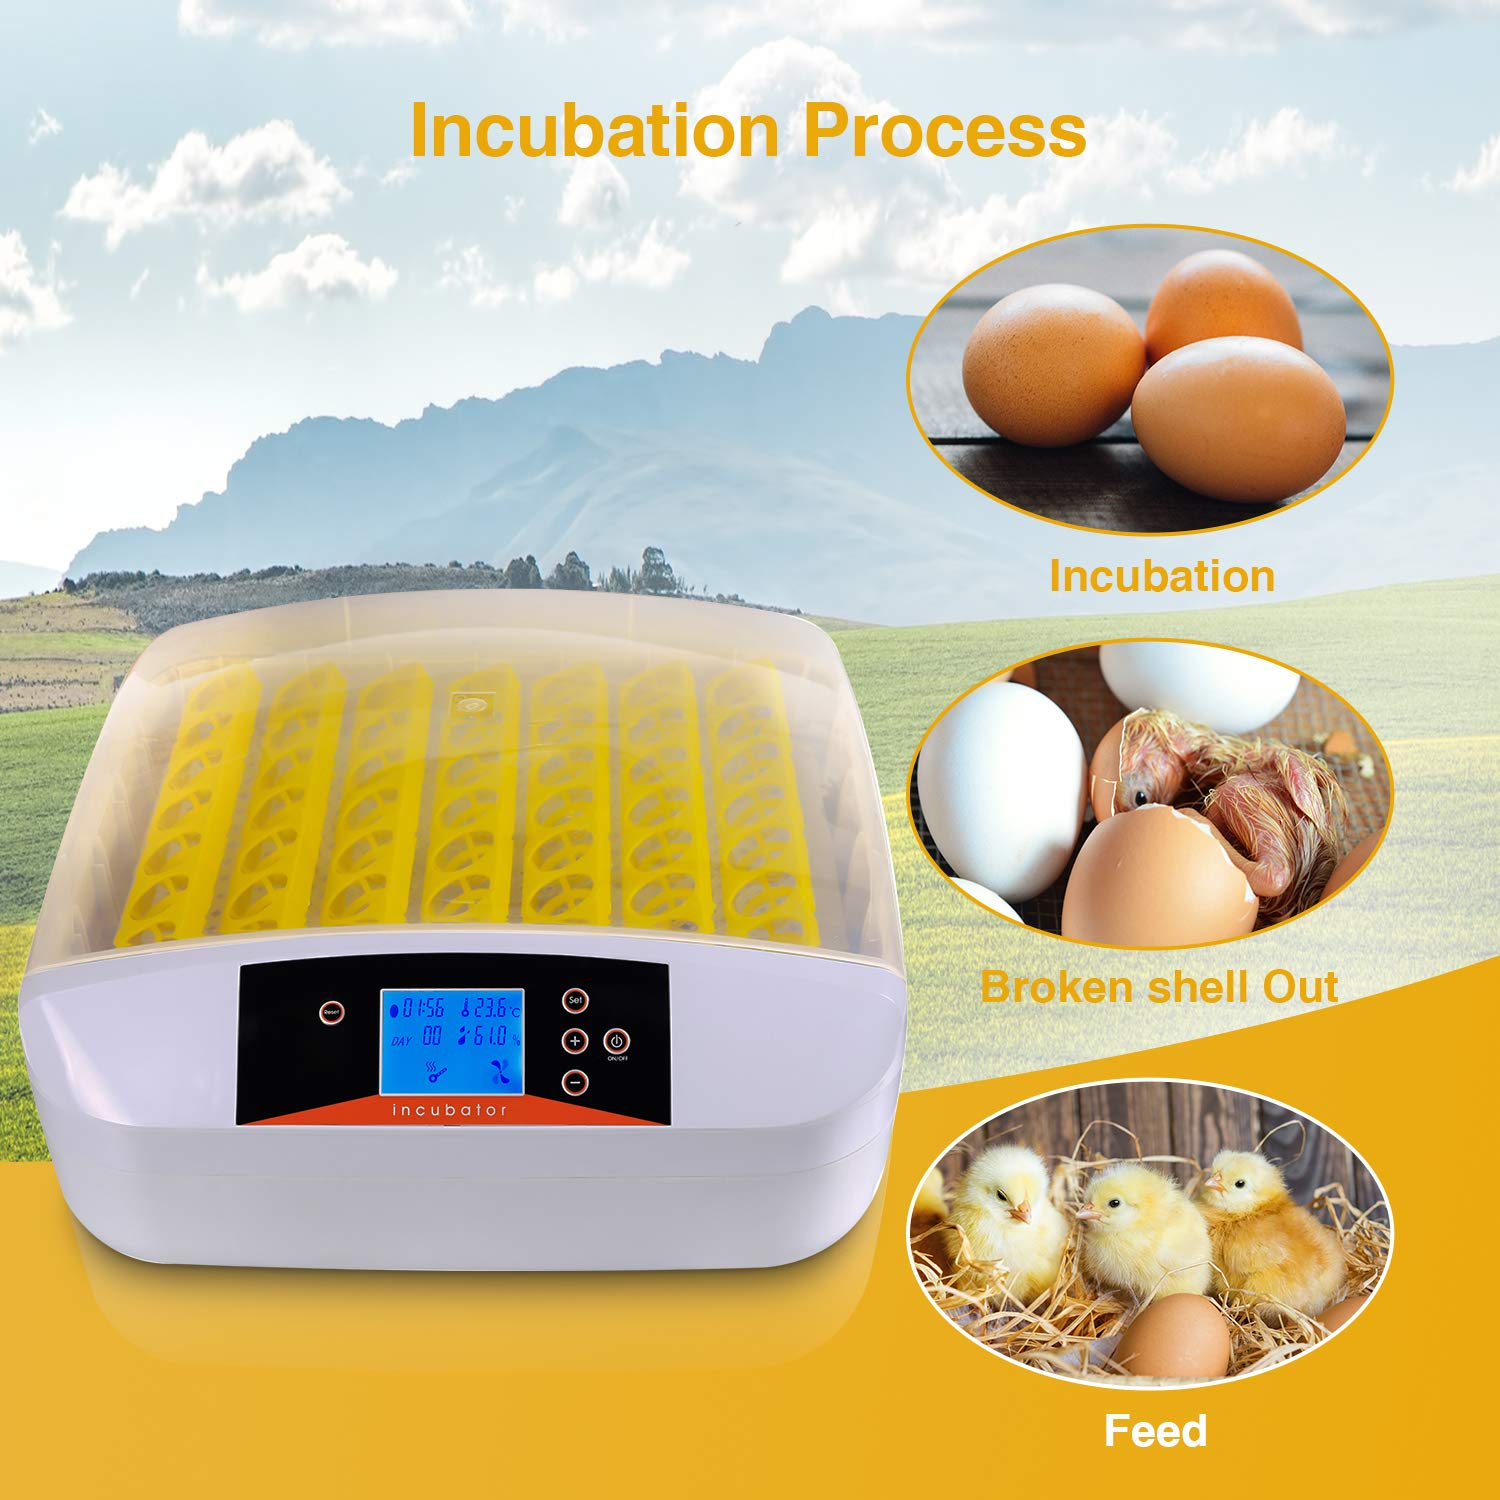 Currens 56 Egg Incubator with Eggs Turner,Digital Automatic Incubators for Hatching Chicken Duck Quail Birds Eggs Poultry Hatcher,Encubadora De Huevos by Currens (Image #6)